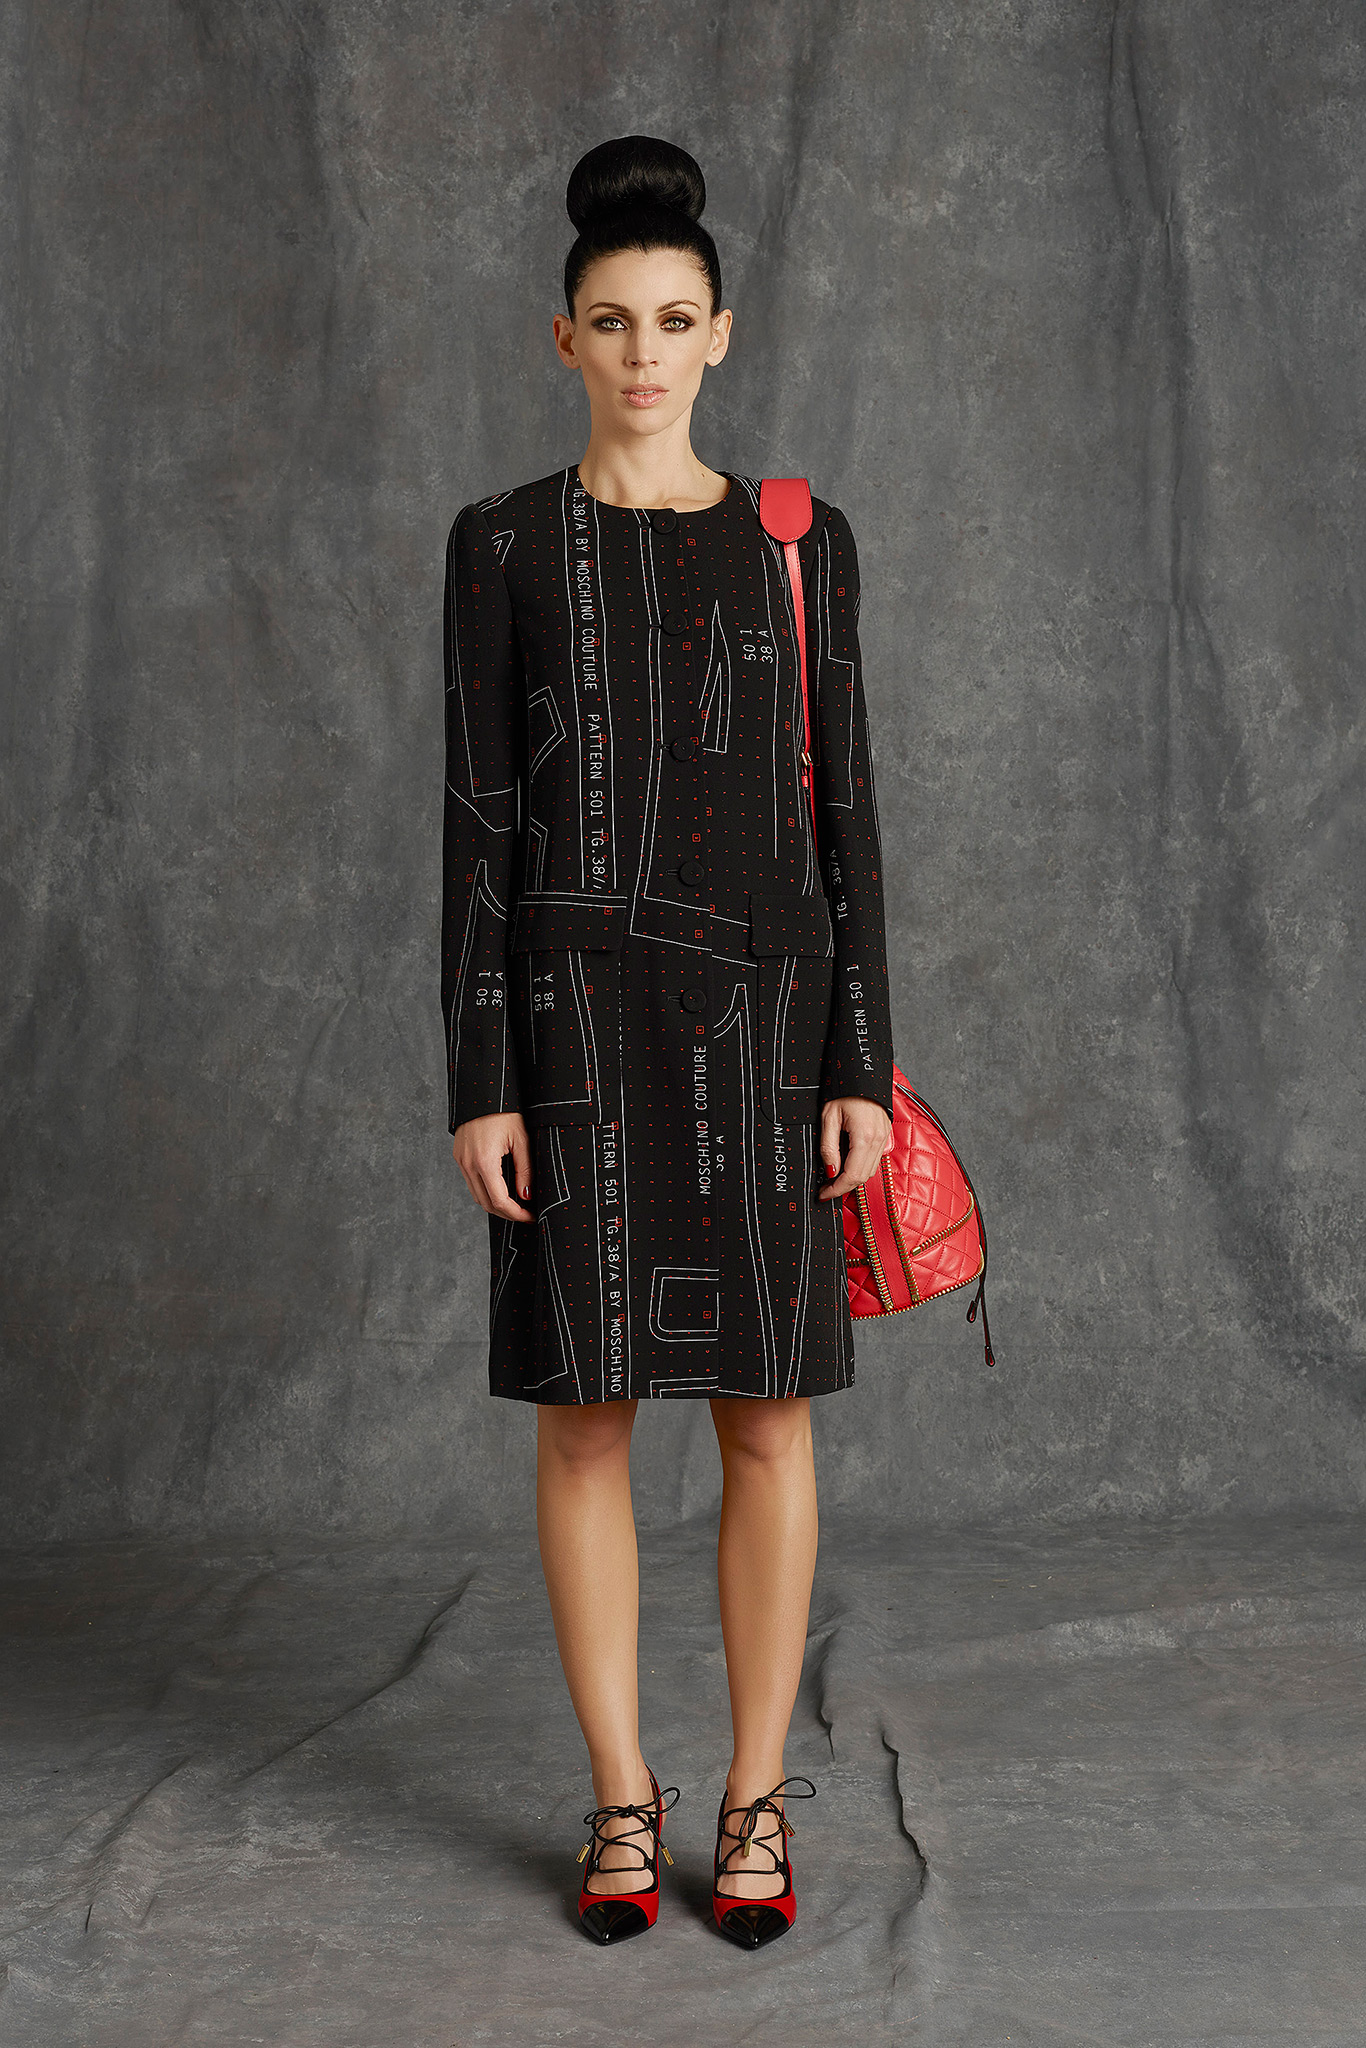 Moschino pre-fall 2015 we fashion trends _11_1366